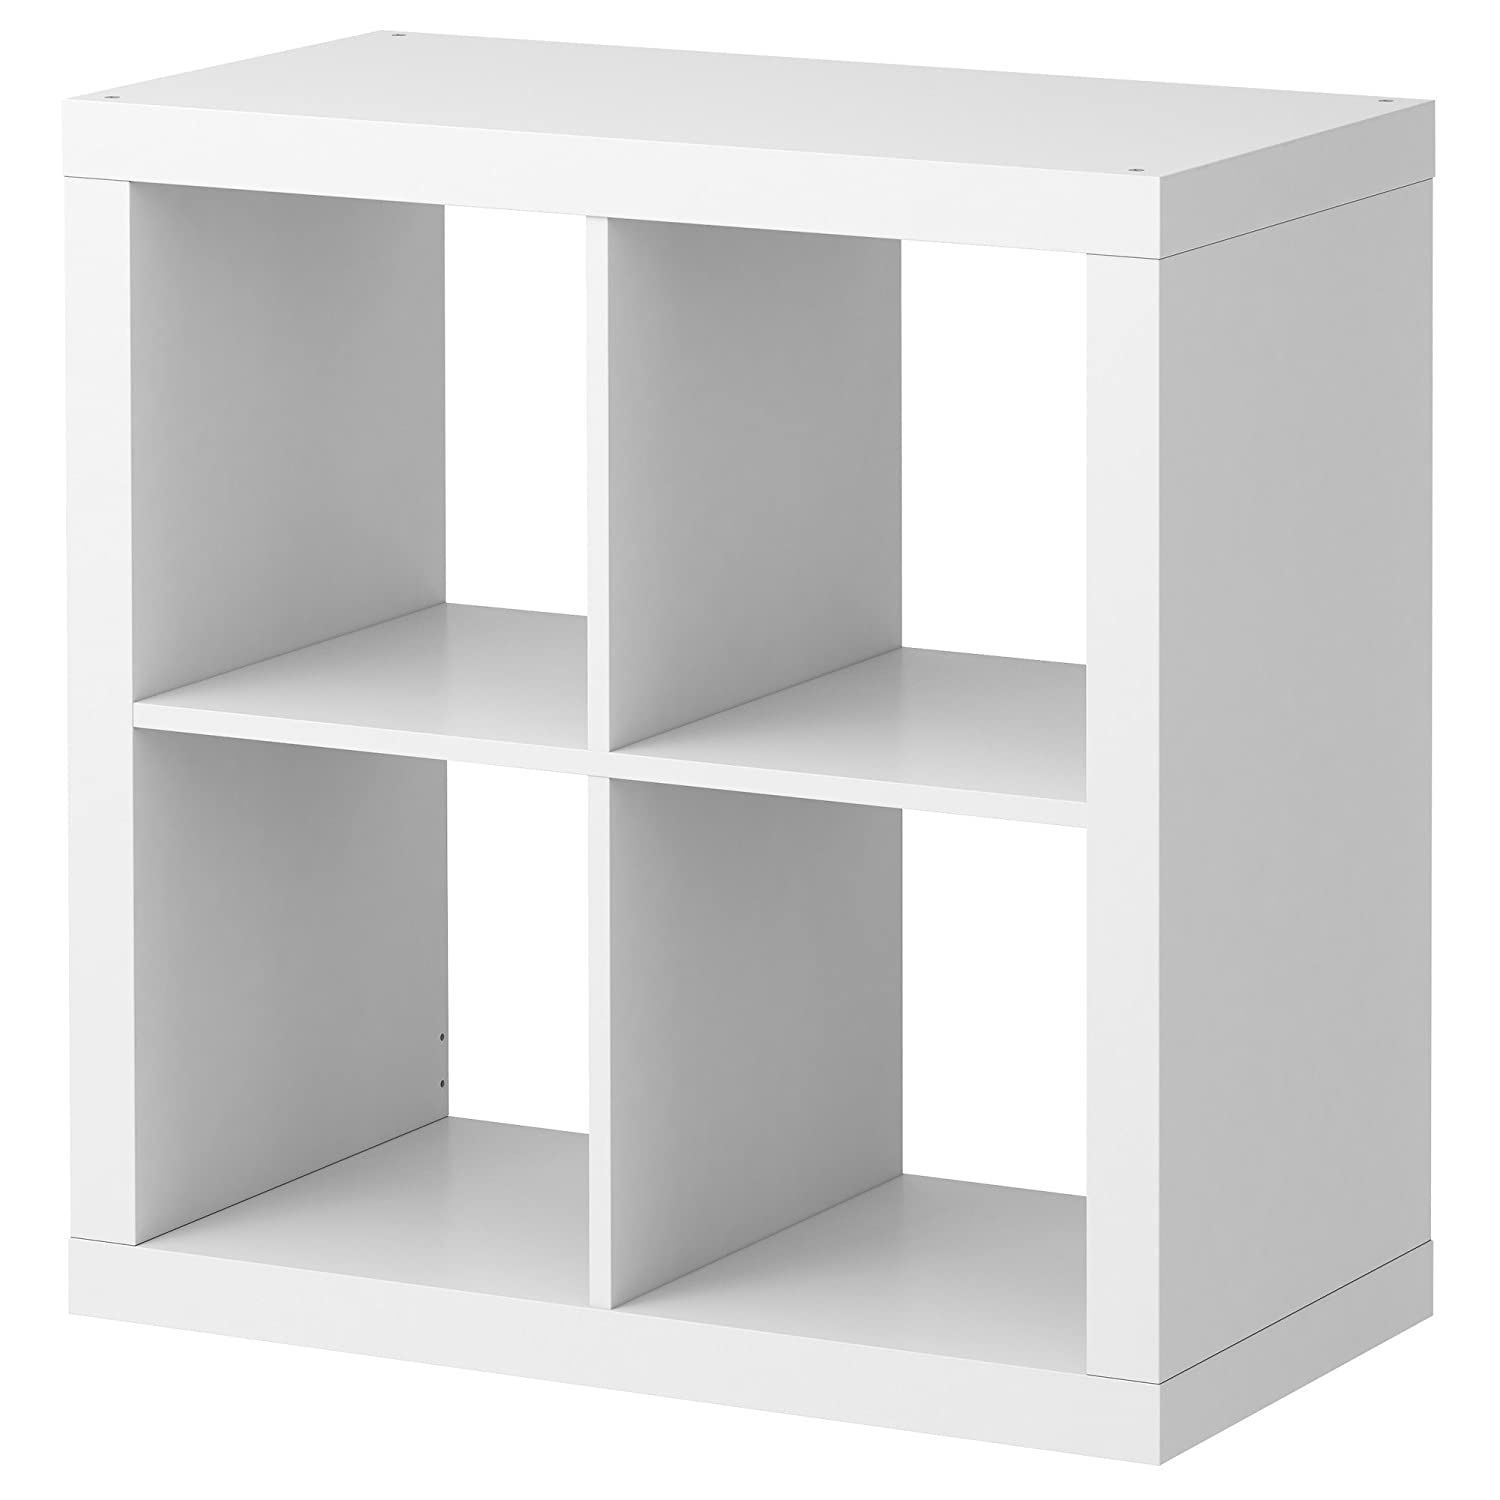 IKEA KALLAX SHELVING UNIT, BOOKCASE, WHITE, PERFECT FOR BASKETS OR BOXES